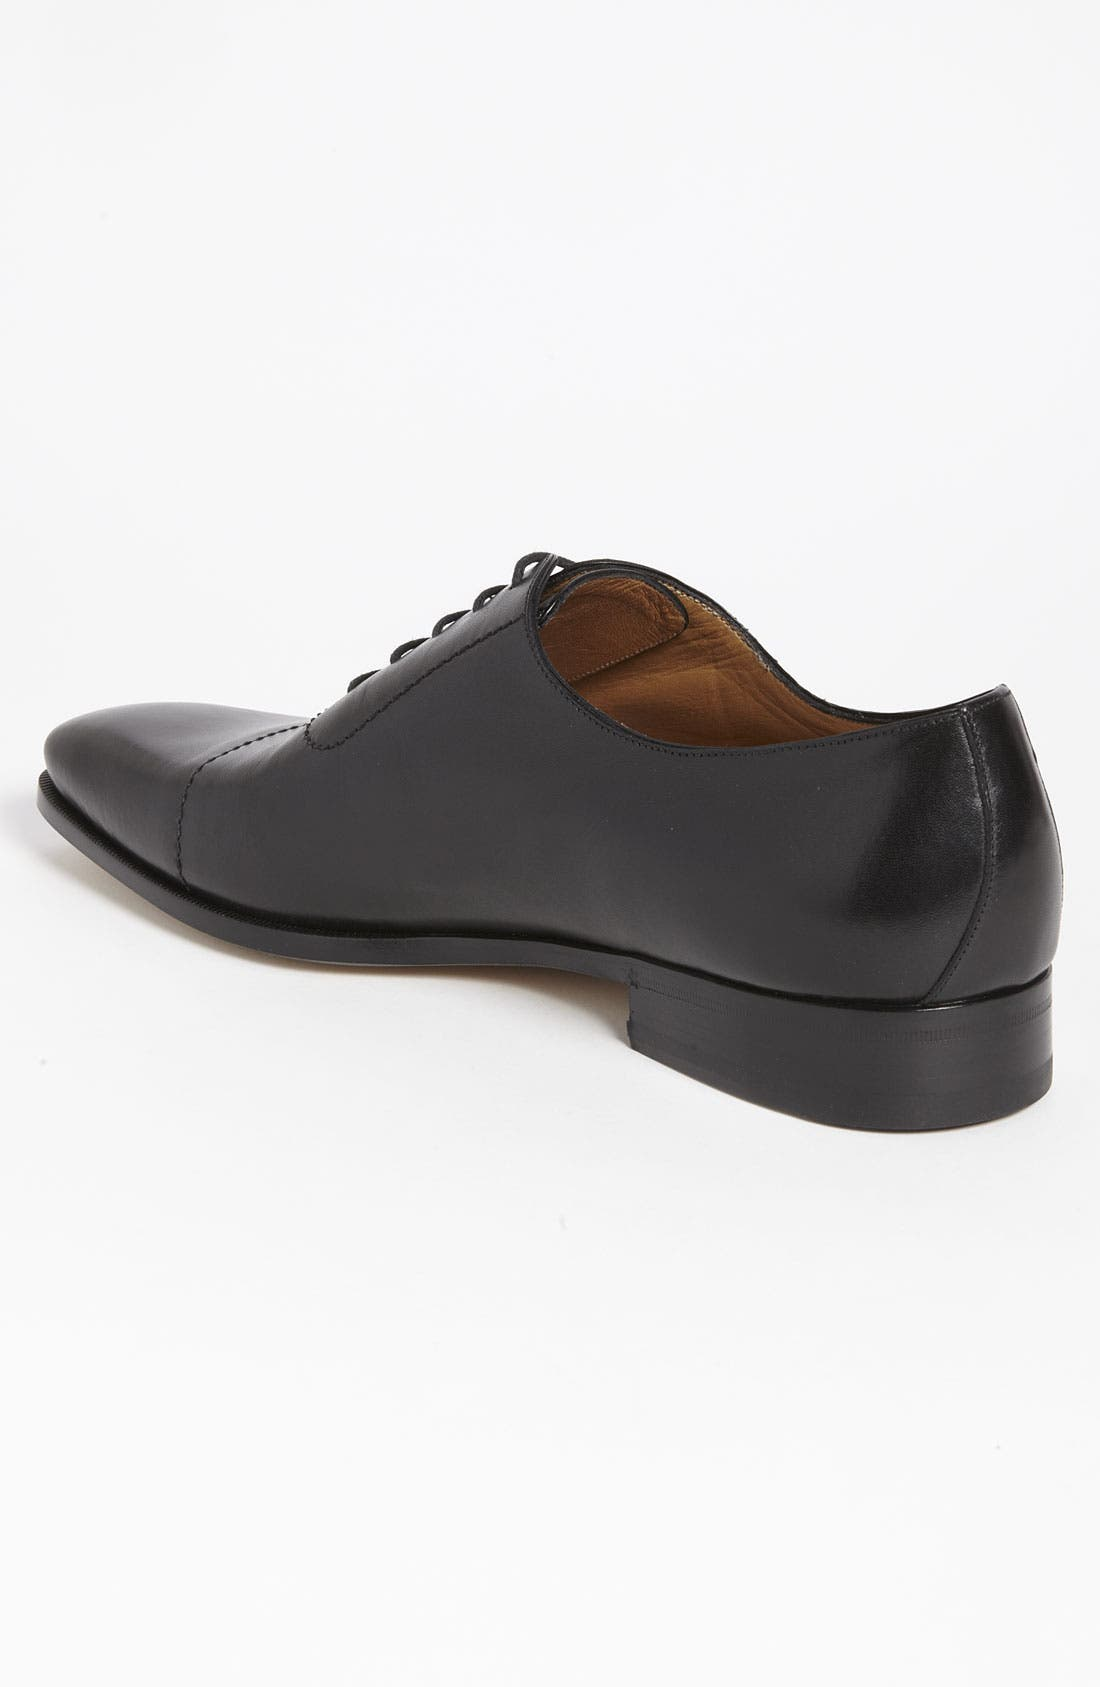 Alternate Image 2  - Gucci 'Kyoto' Cap Toe Oxford